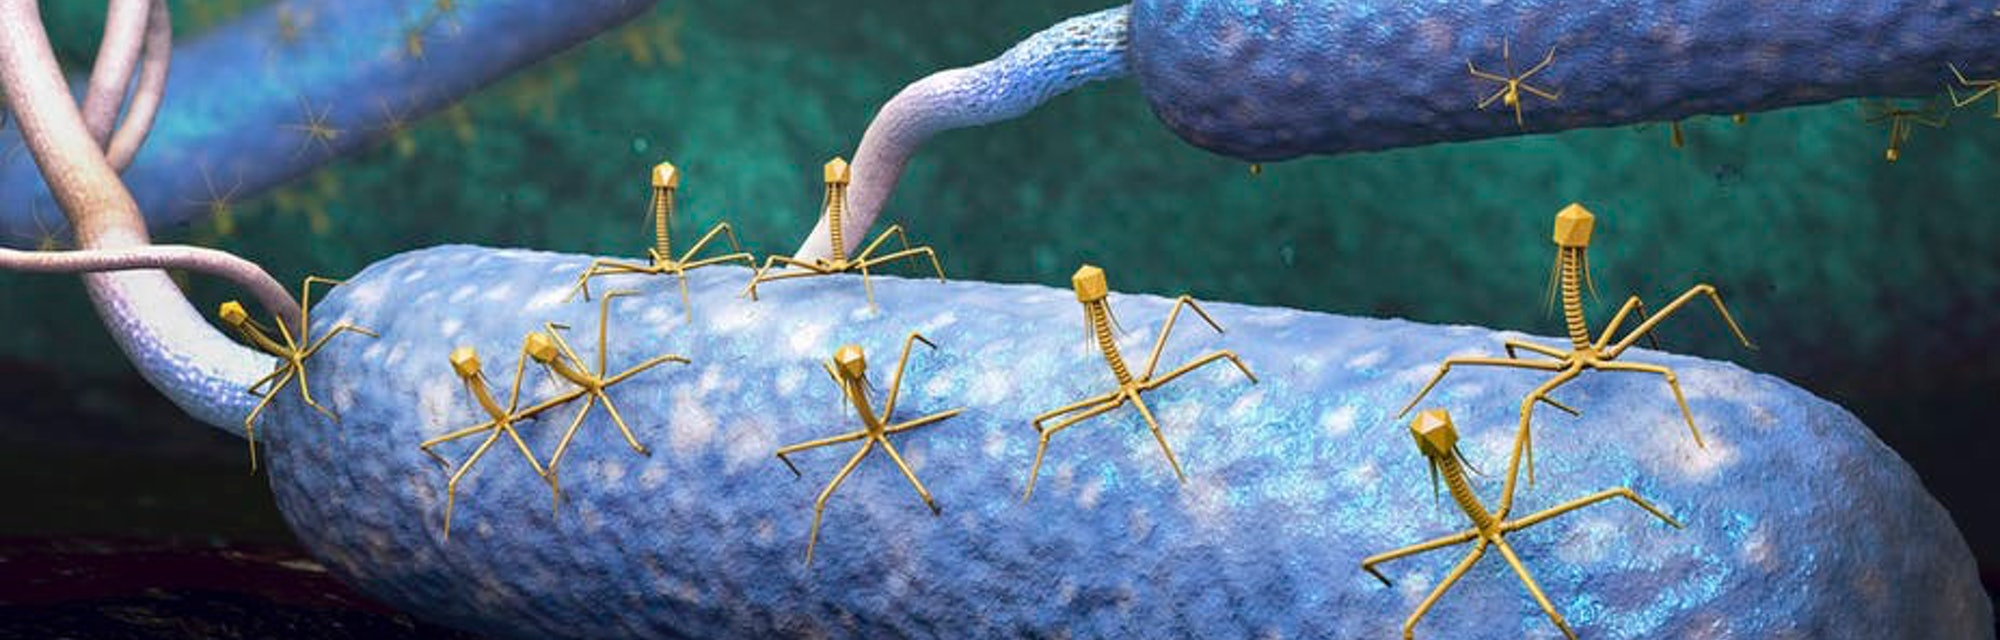 Bacteriophage (yellow) are viruses that infect and destroy bacteria (blue).